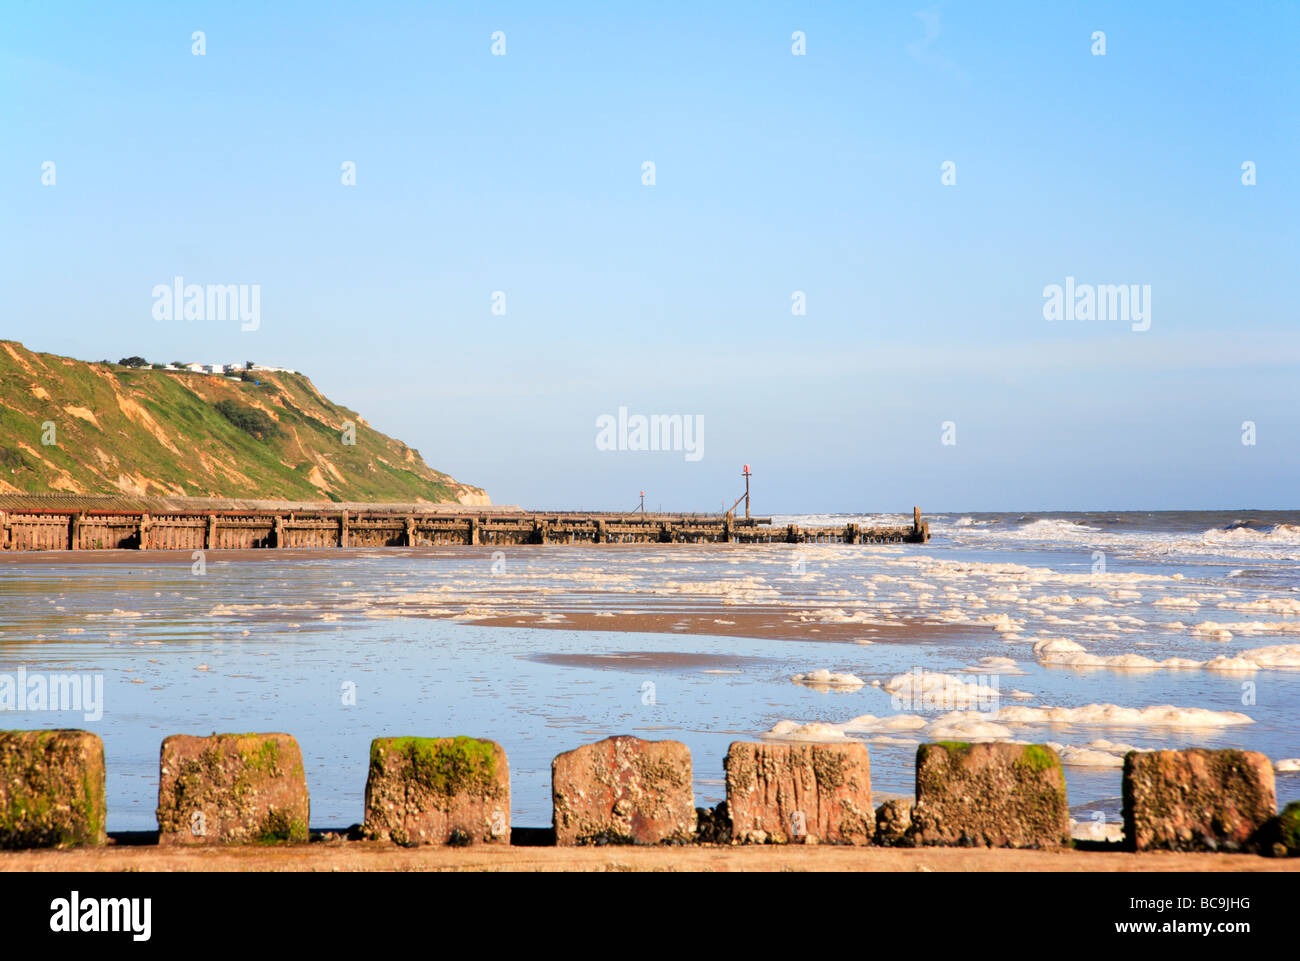 West beach at Mundesley, Norfolk, United Kingdom, with ougoing tide and spume. - Stock Image